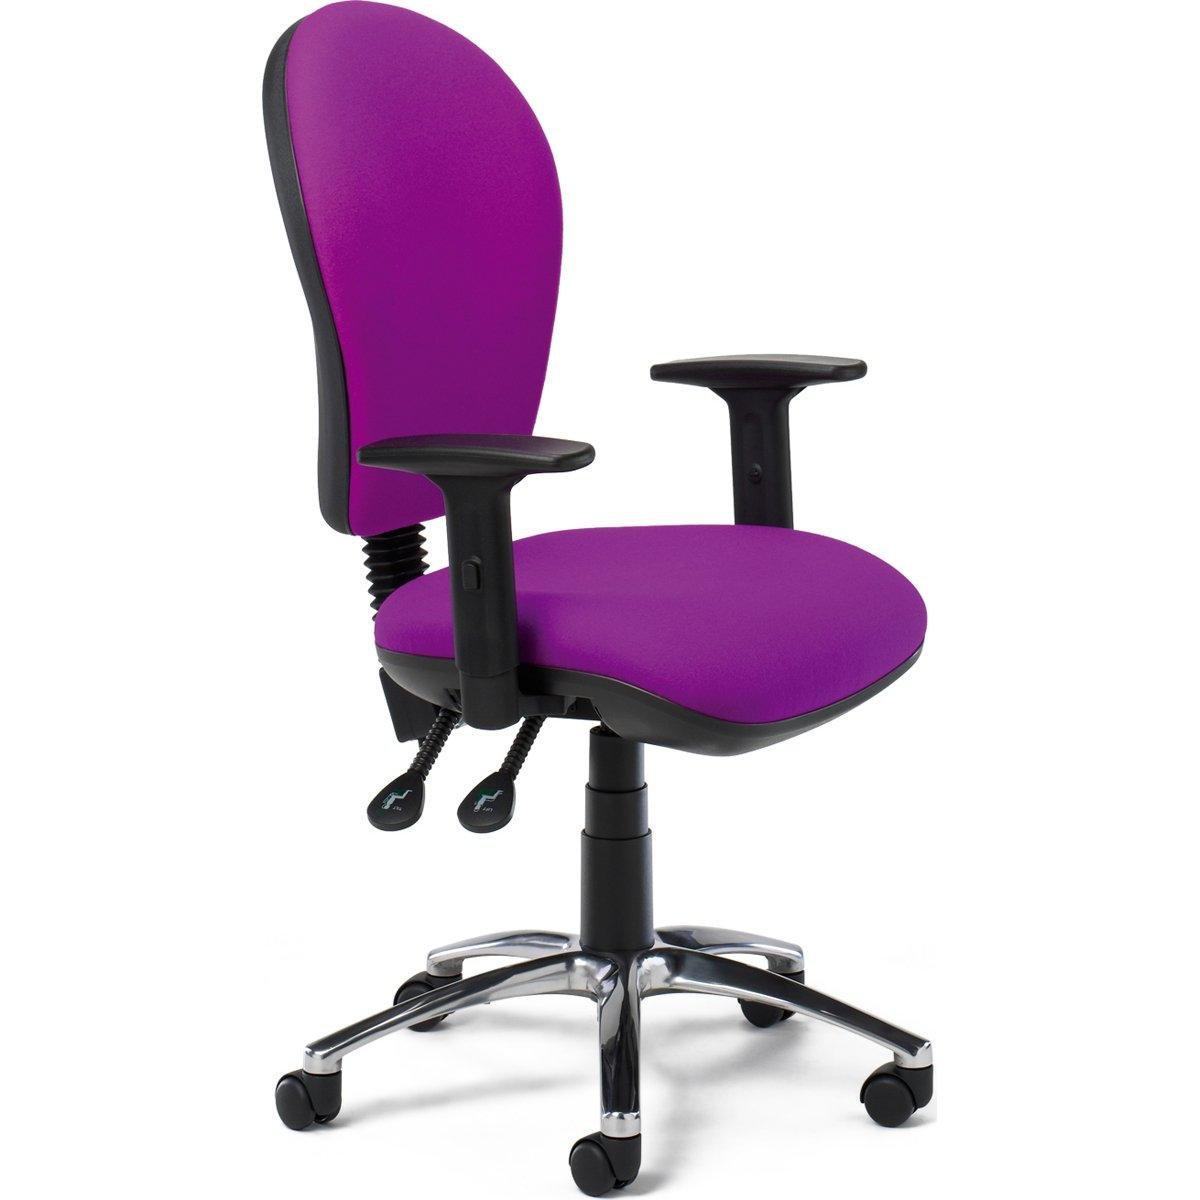 SCT516/22ADJ Operators Chair with Adjustable Arms